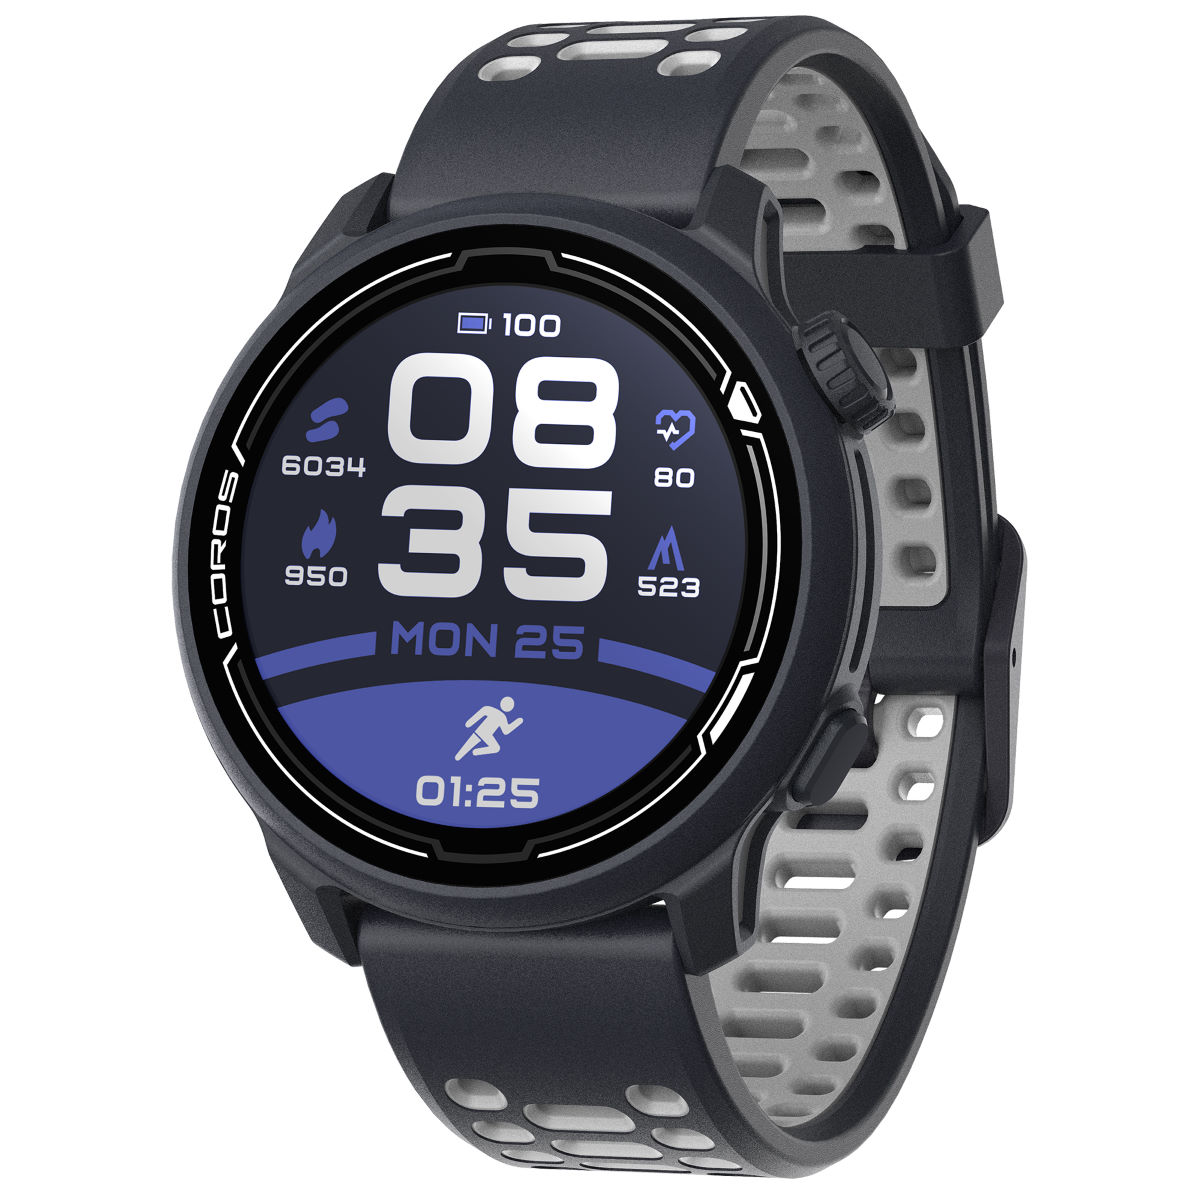 COROS PACE 2 Premium GPS Sports Watch Watches